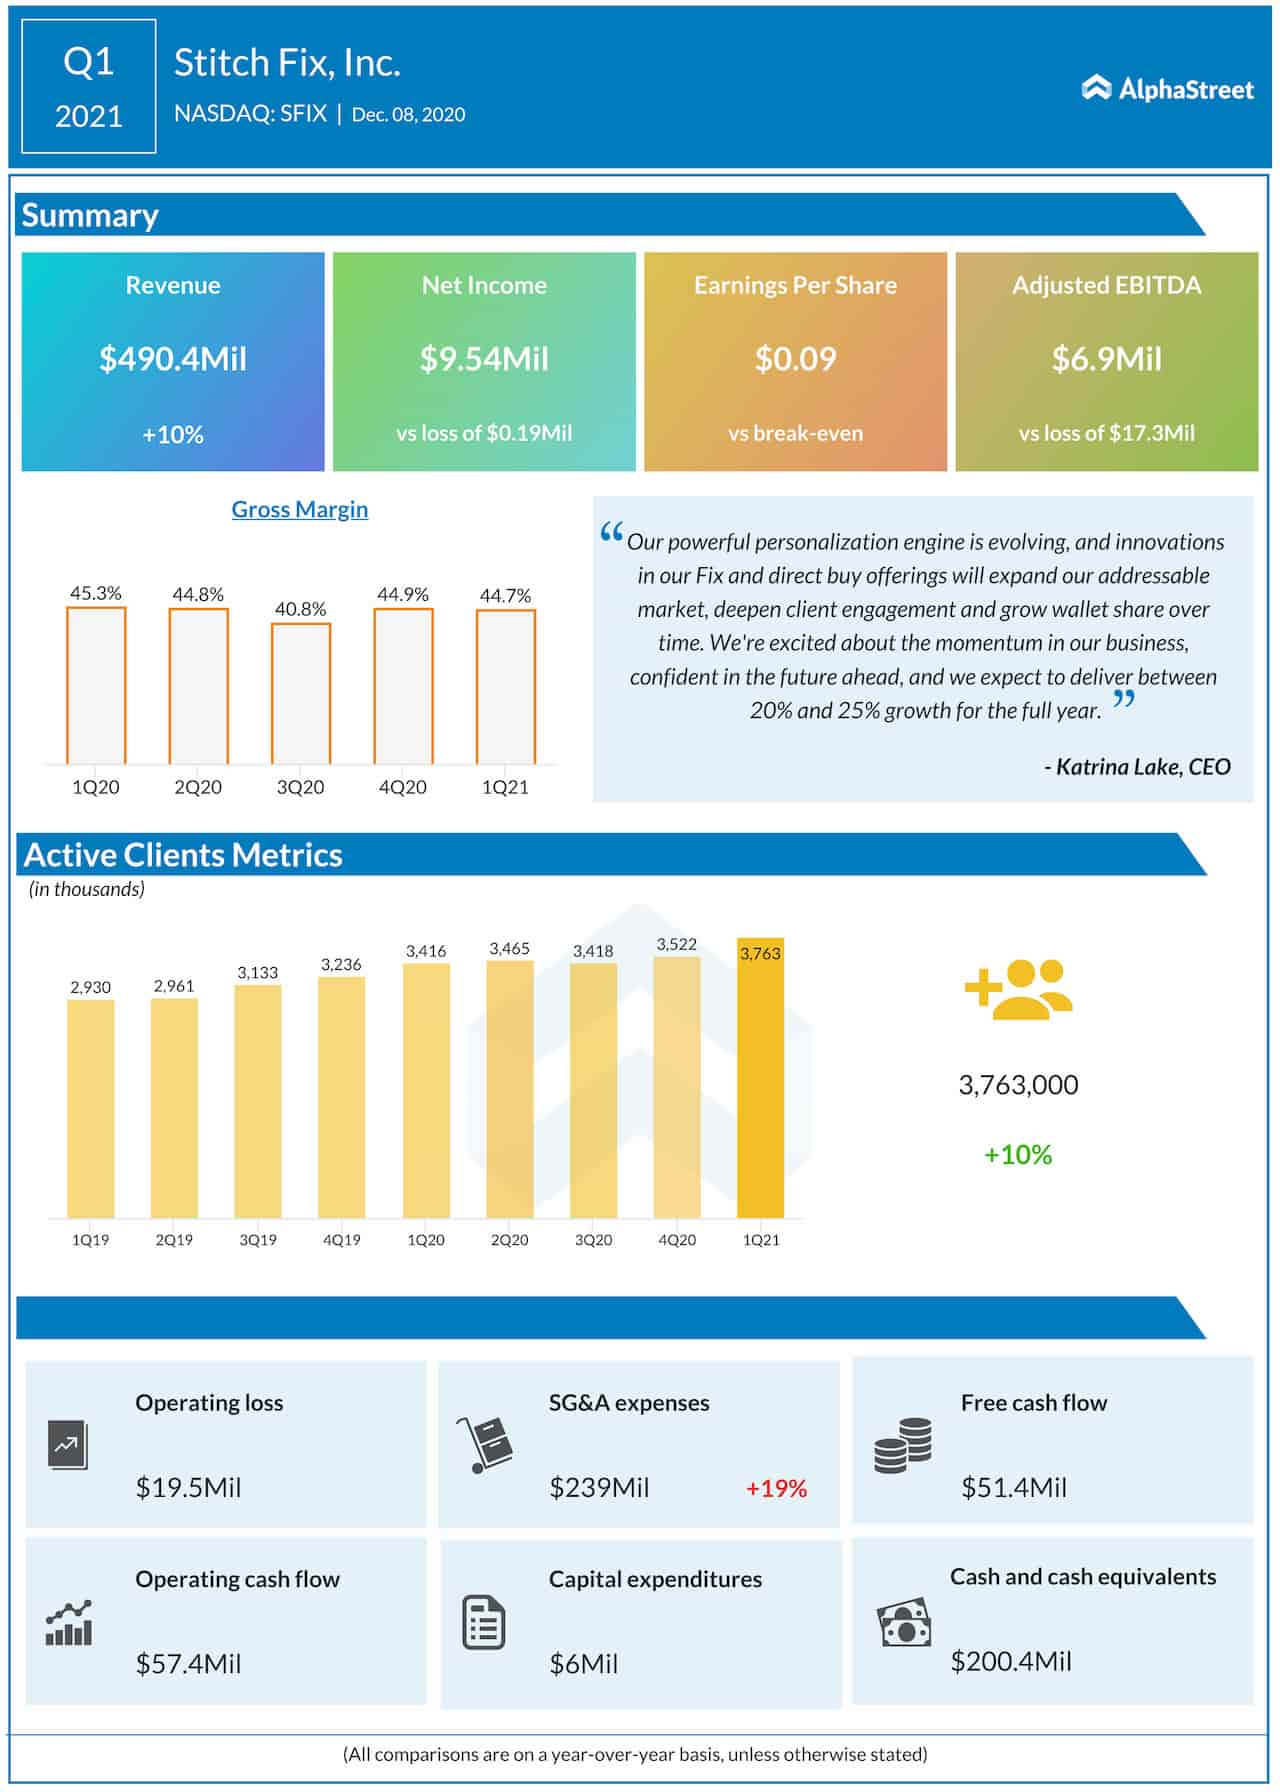 Stitch Fix Q1 2021 earnings infographic